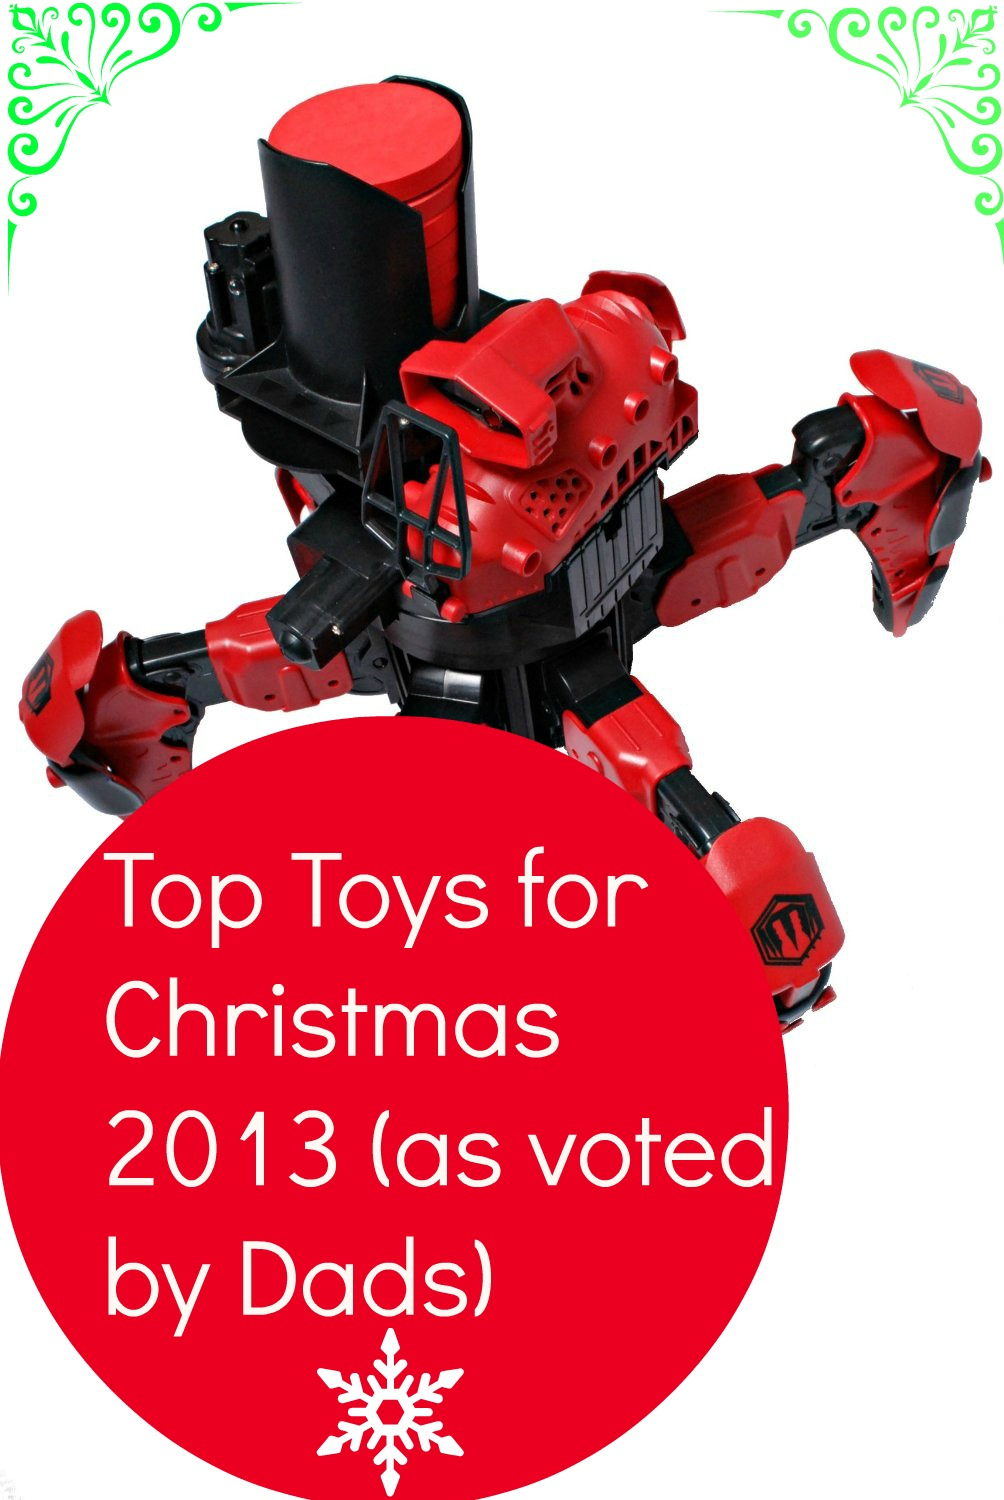 Top Toys for Christmas 2013 as Chosen by Dads